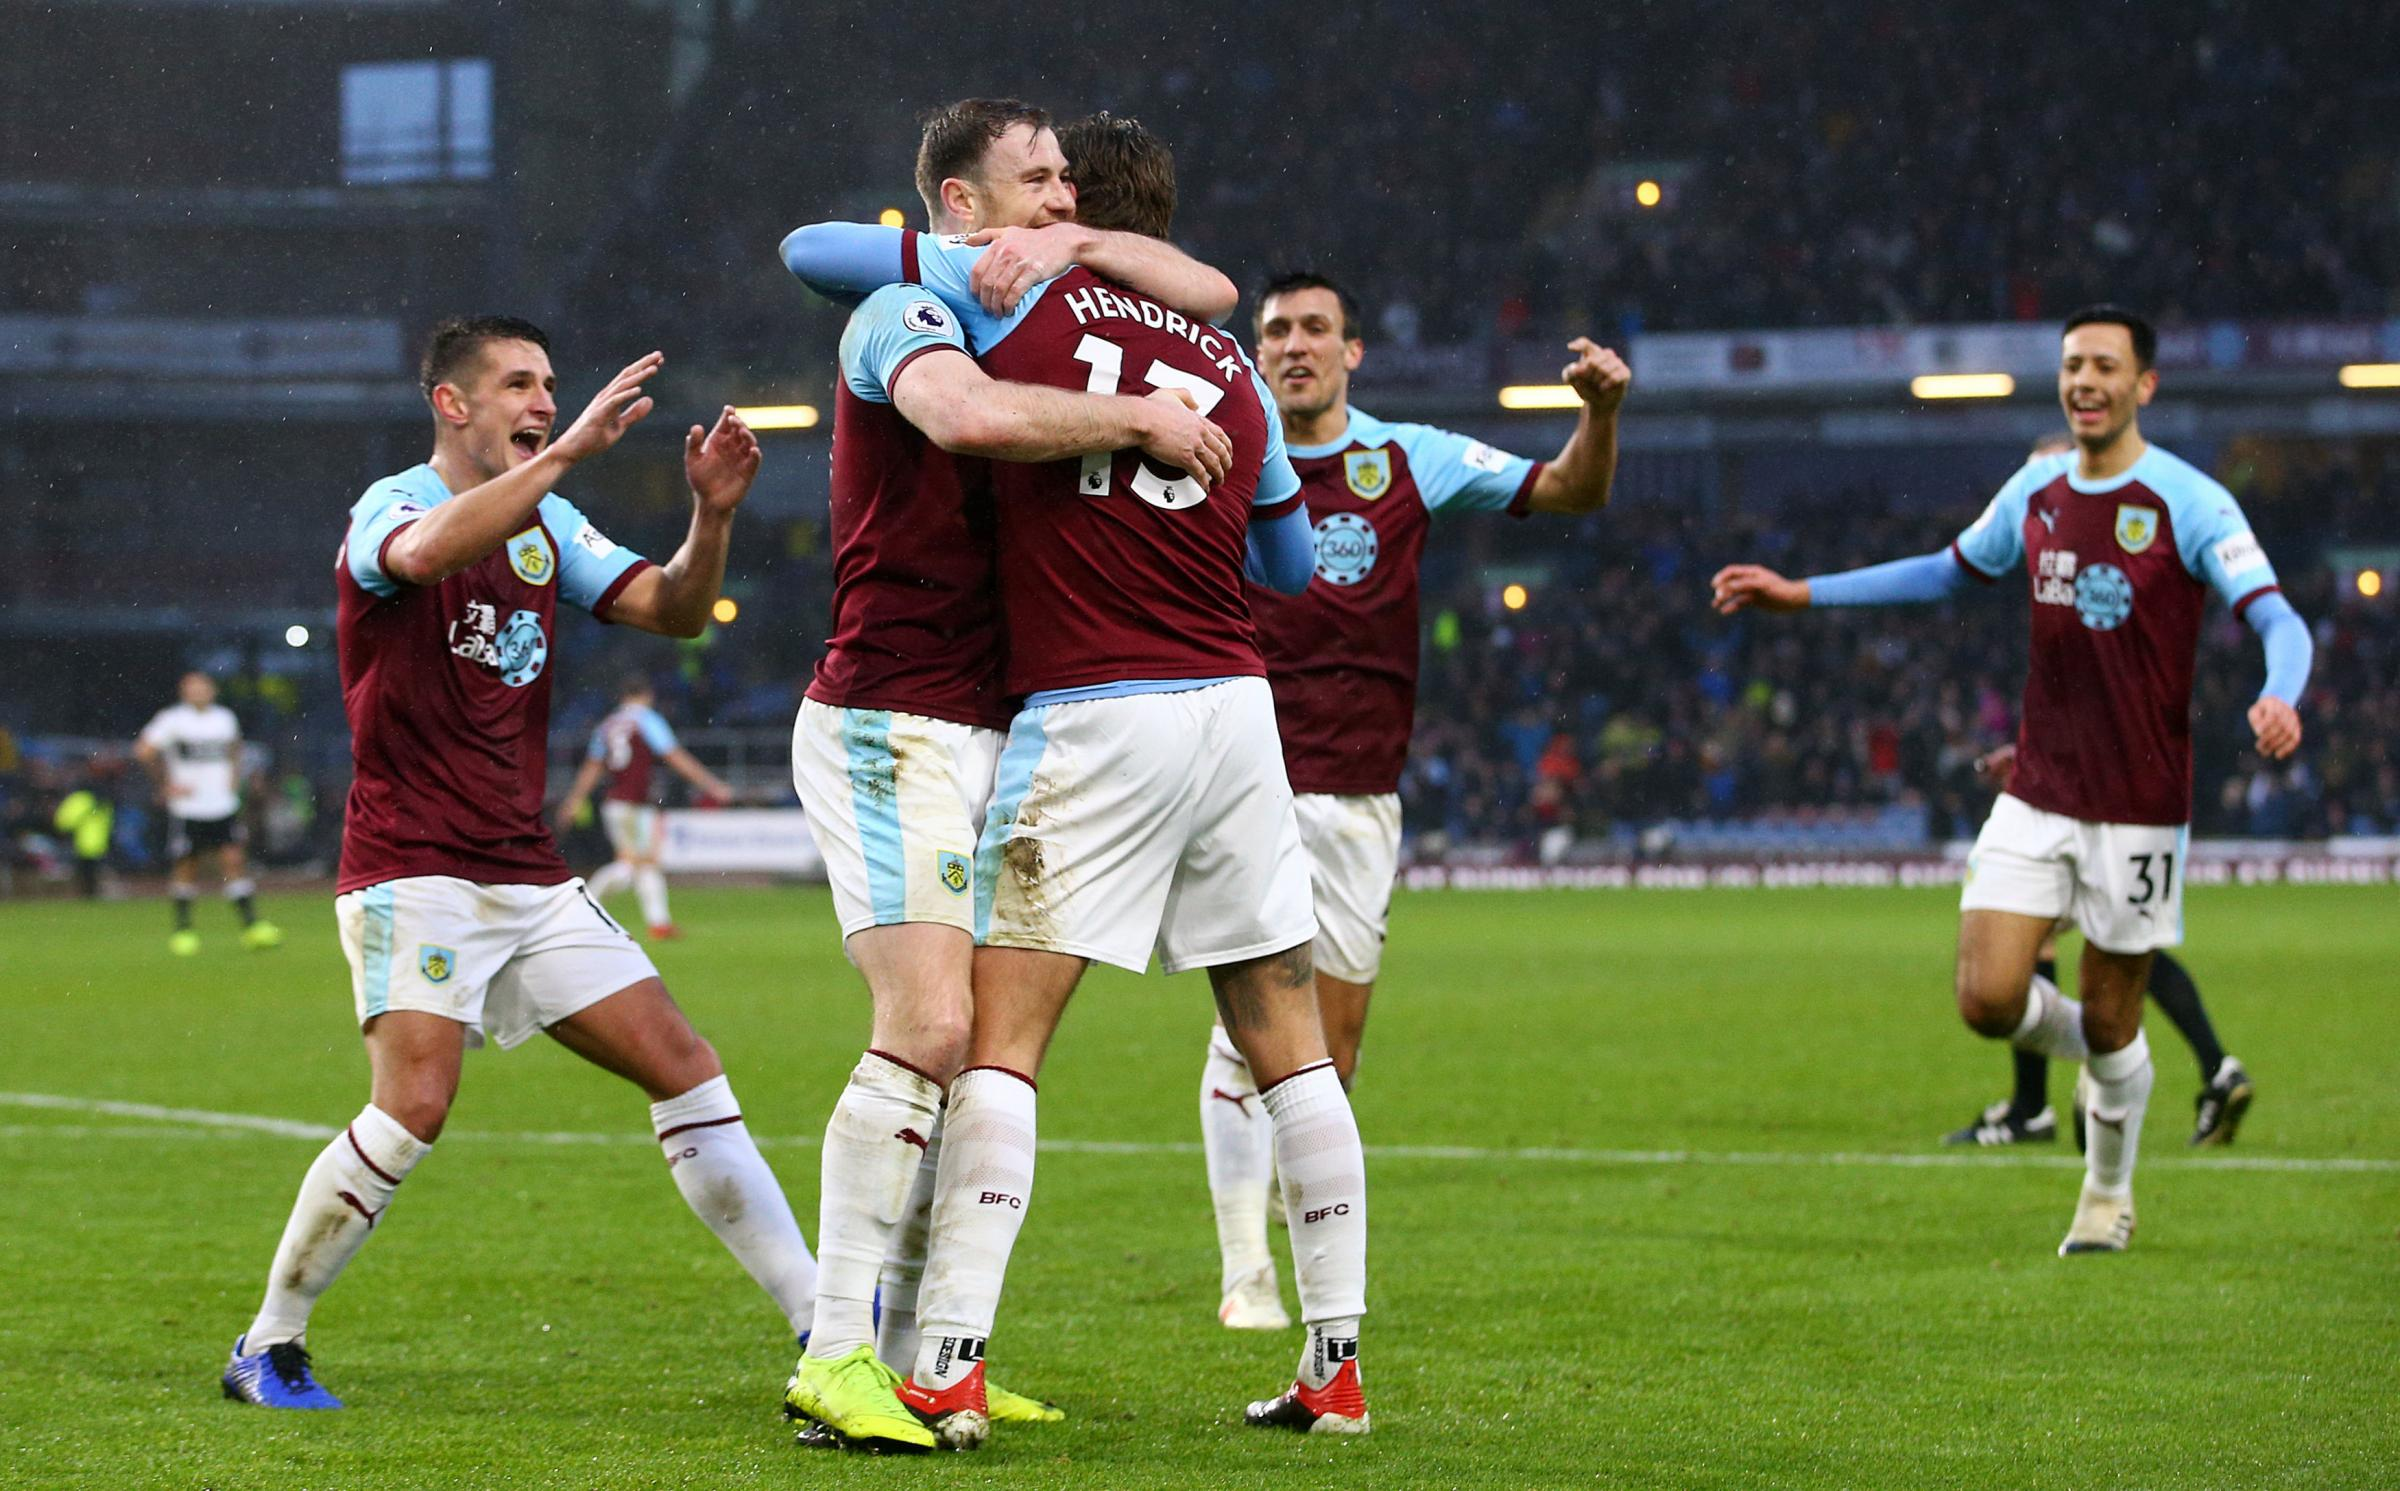 Burnley players react after Fulham's Denis Odoi scores his side's second own goal of the game during the Premier League match at Turf Moor, Burnley. PRESS ASSOCIATION Photo. Picture date: Saturday January 12, 2019. See PA story SOCCER Burnley. Pho